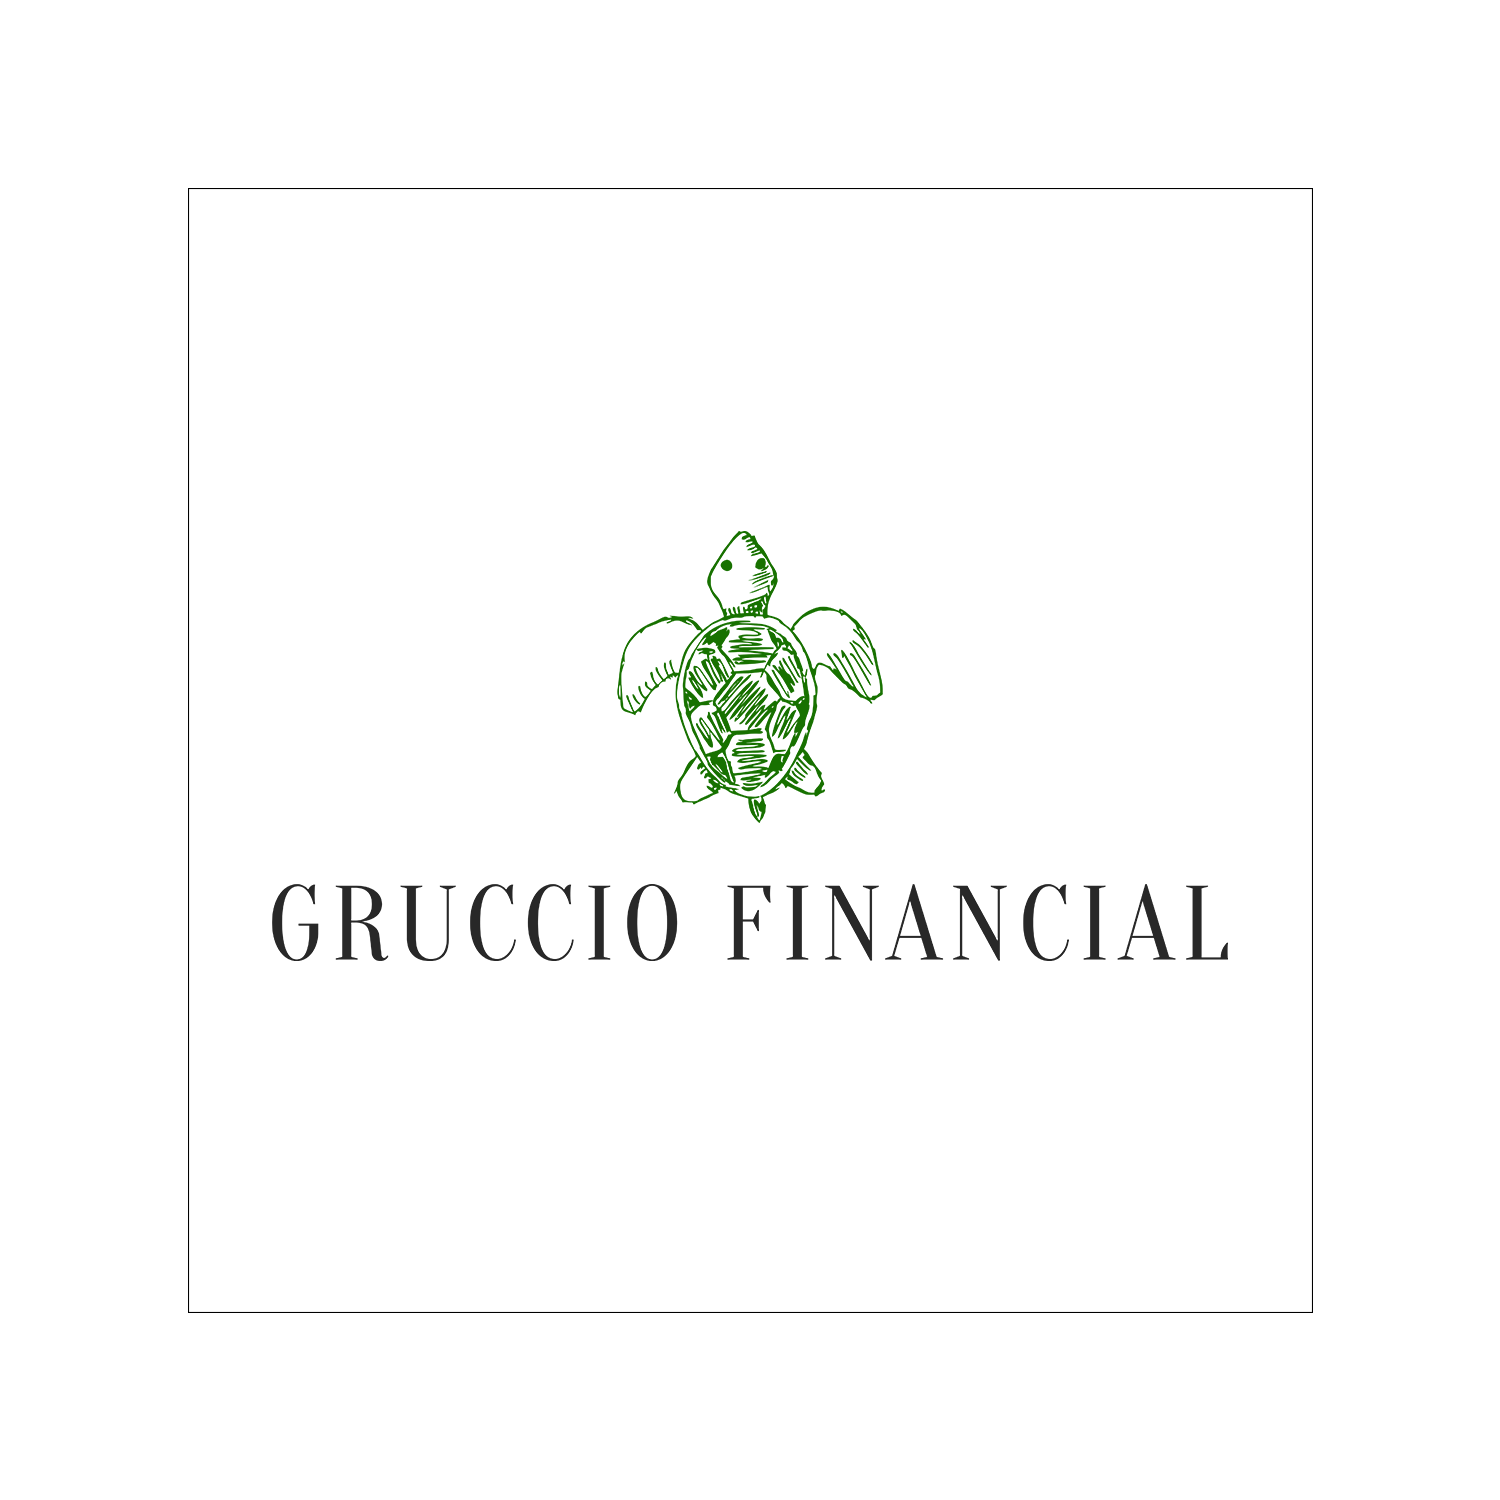 Gruccio Financial